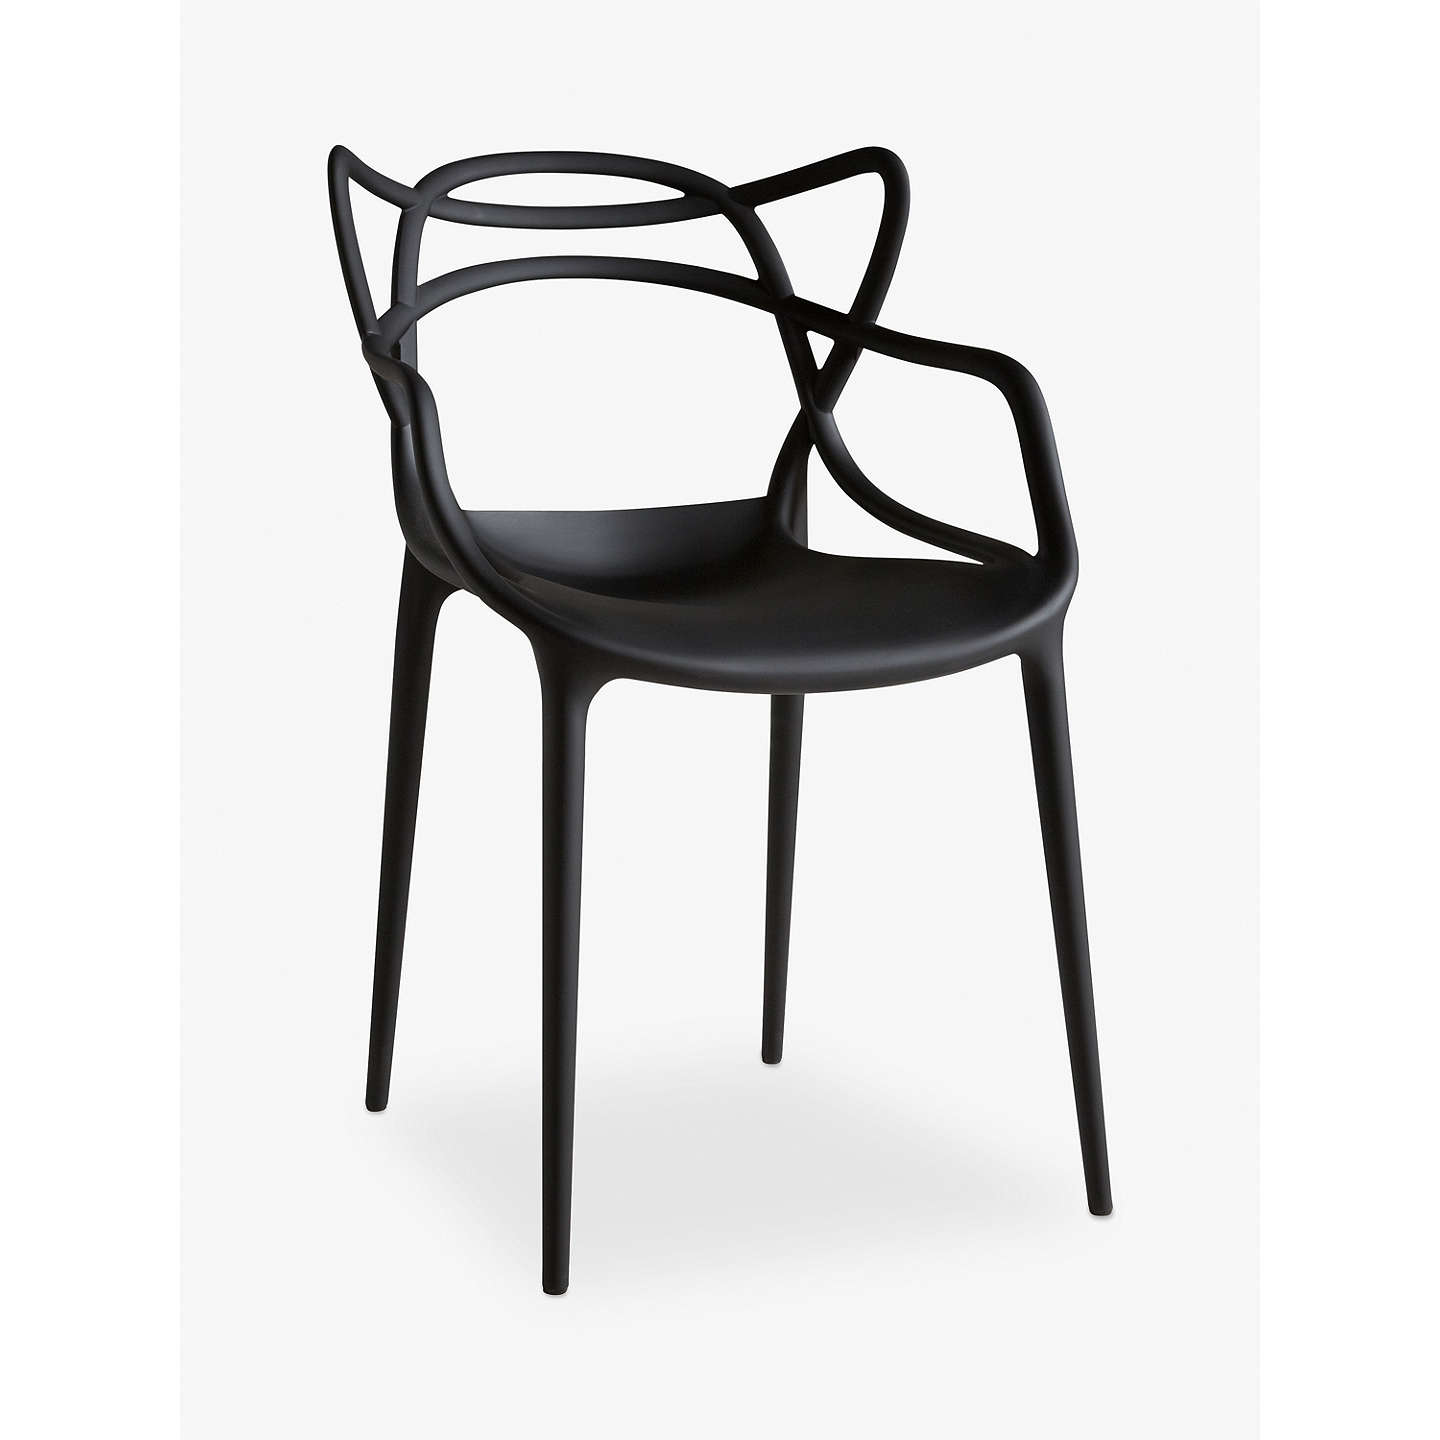 BuyPhilippe Starck for Kartell Masters Chair, Black Online at johnlewis.com